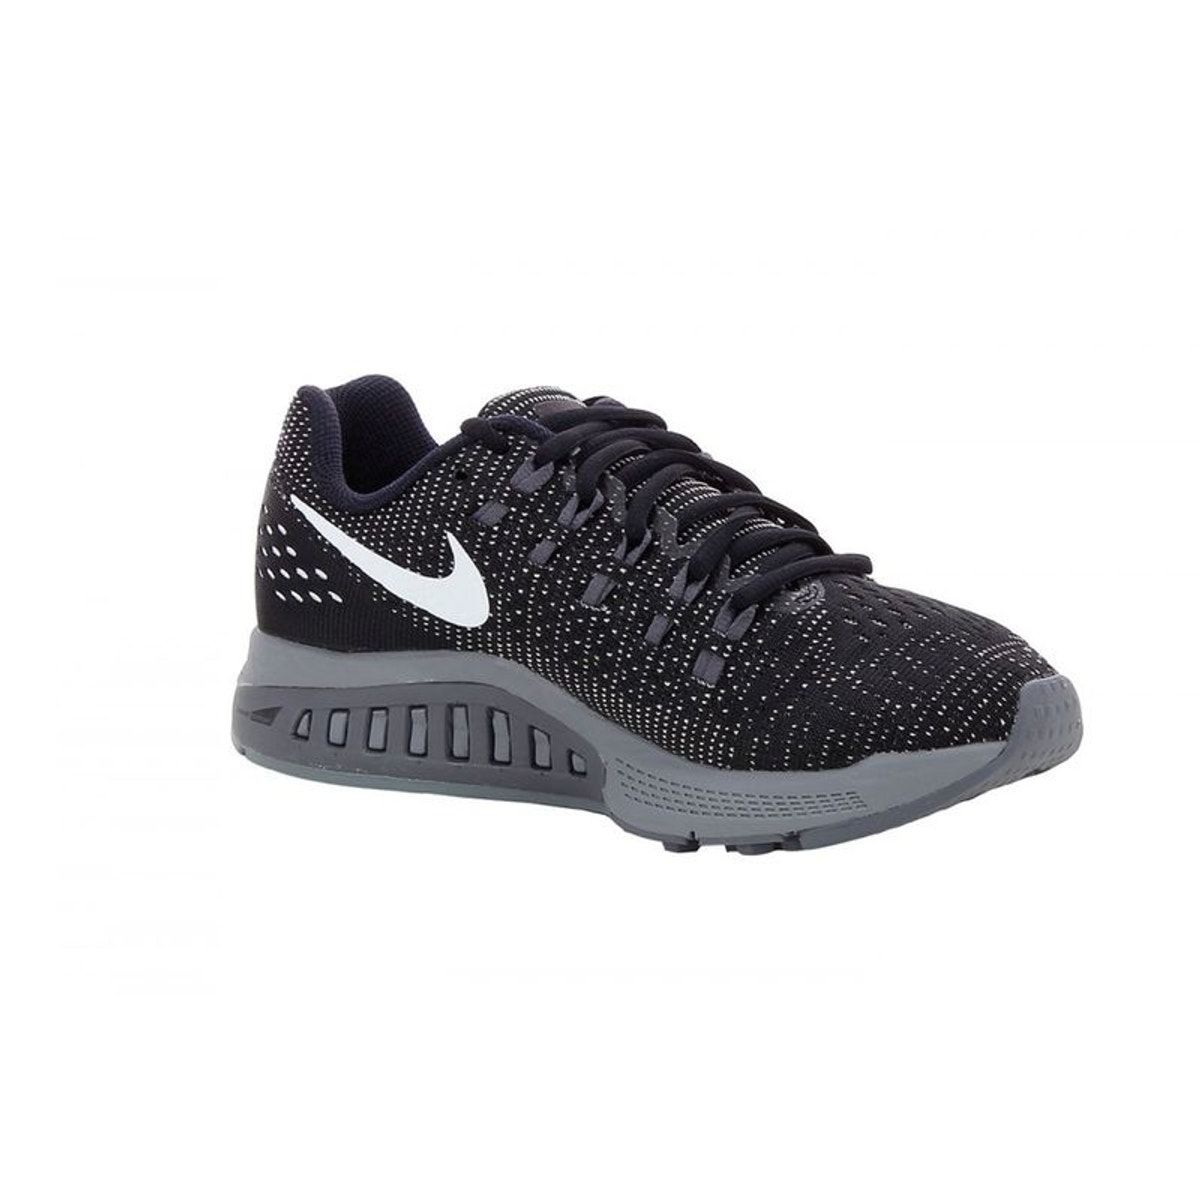 001 19 Air Basket Structure Nike Taille38 Zoom 806584 5LAR43j